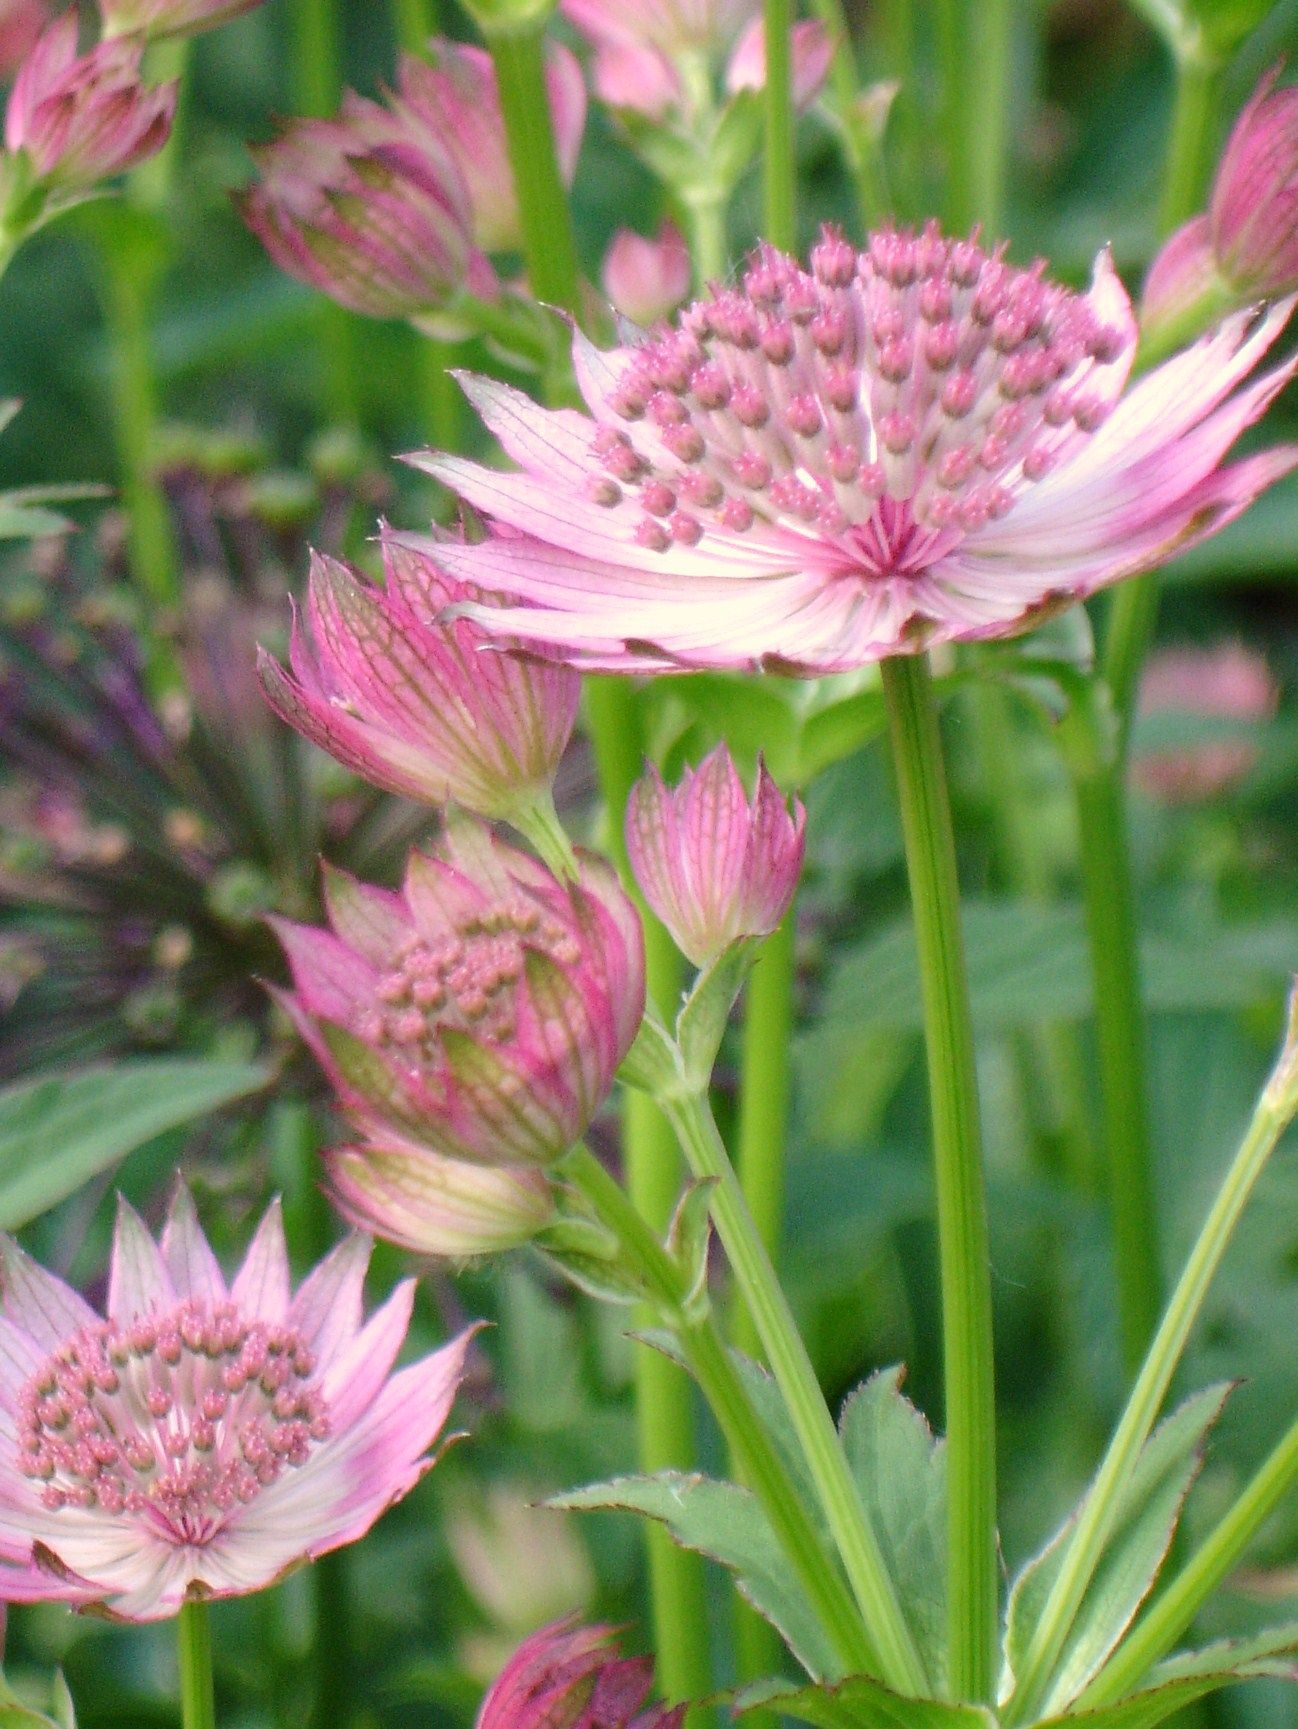 Astrantia Roma Reaching A Height Of 24 Inches With A Long Bloom